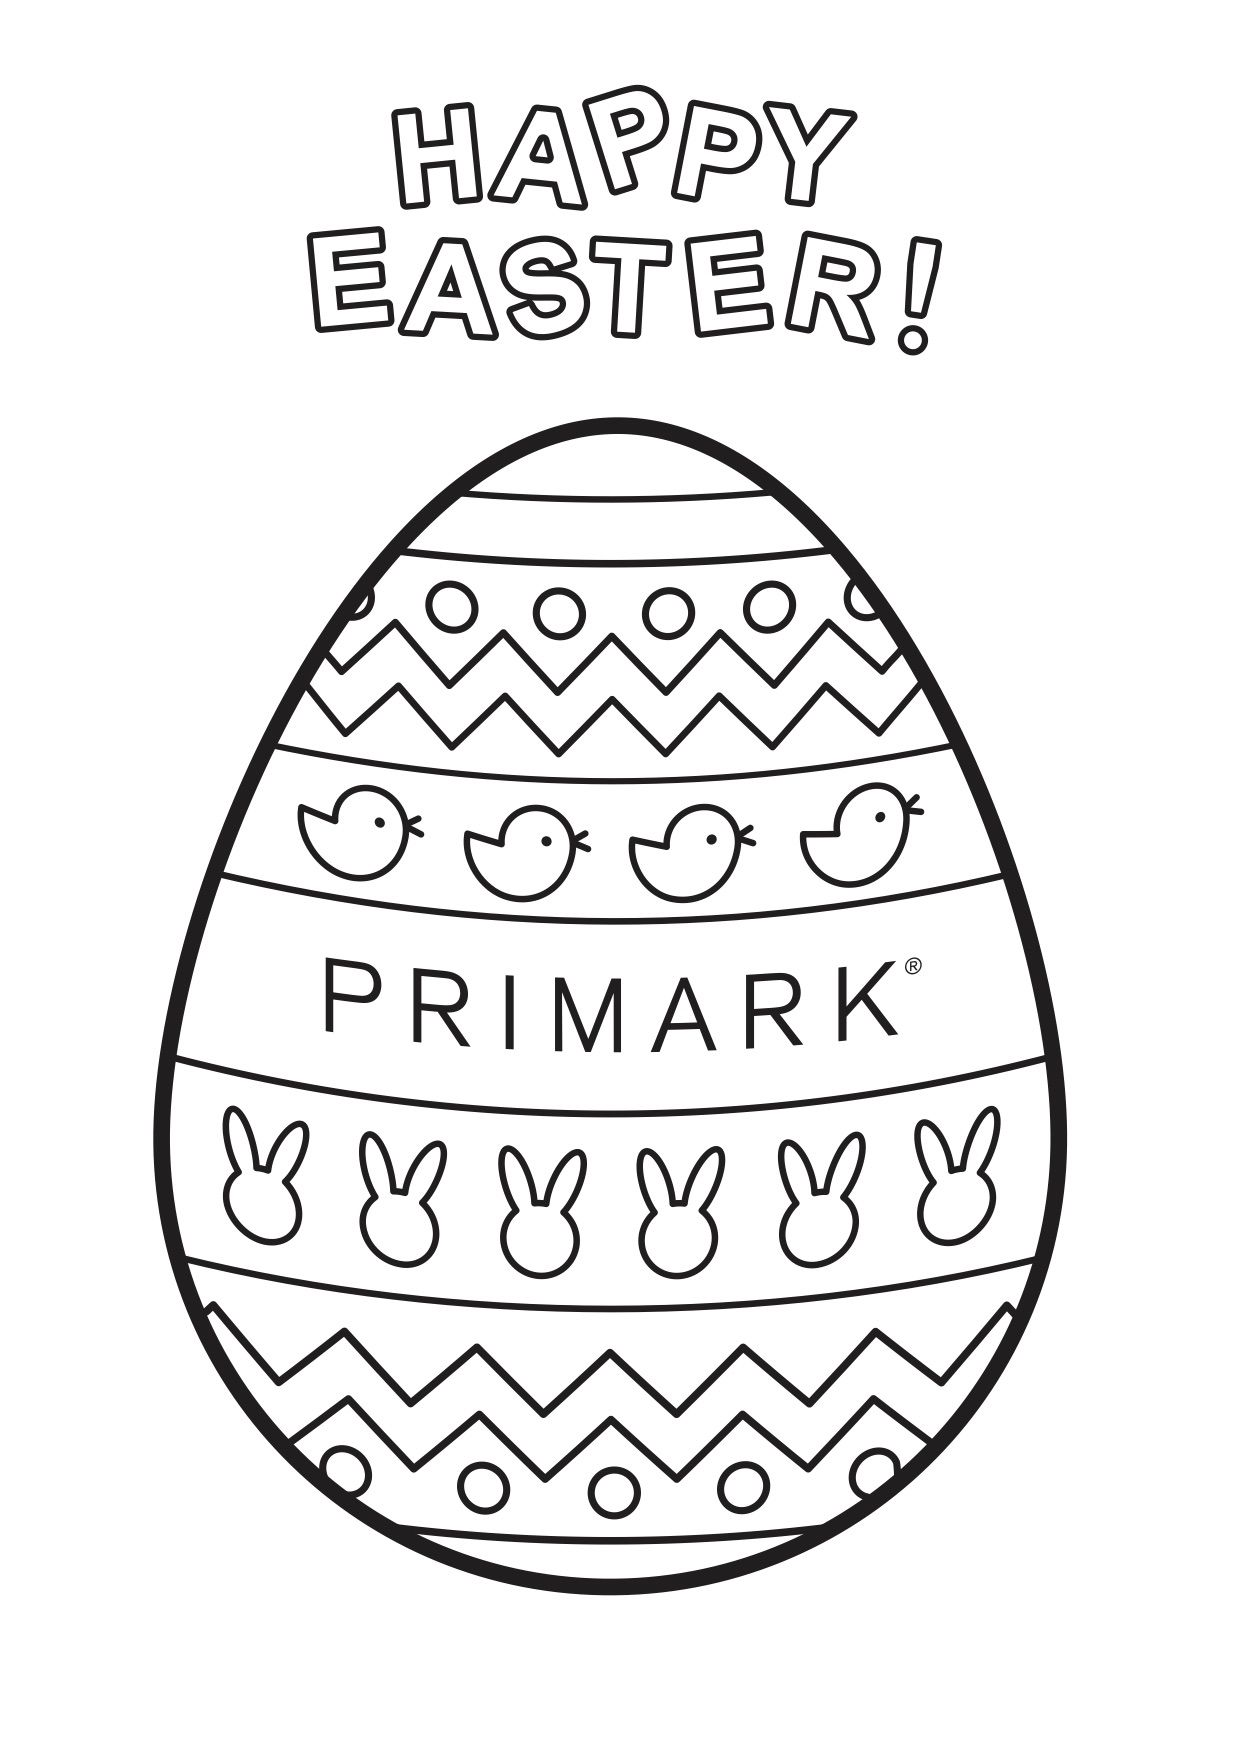 Easter Colouring For Kids Cool Coloring Pages Easter Coloring Pages Easter Colouring